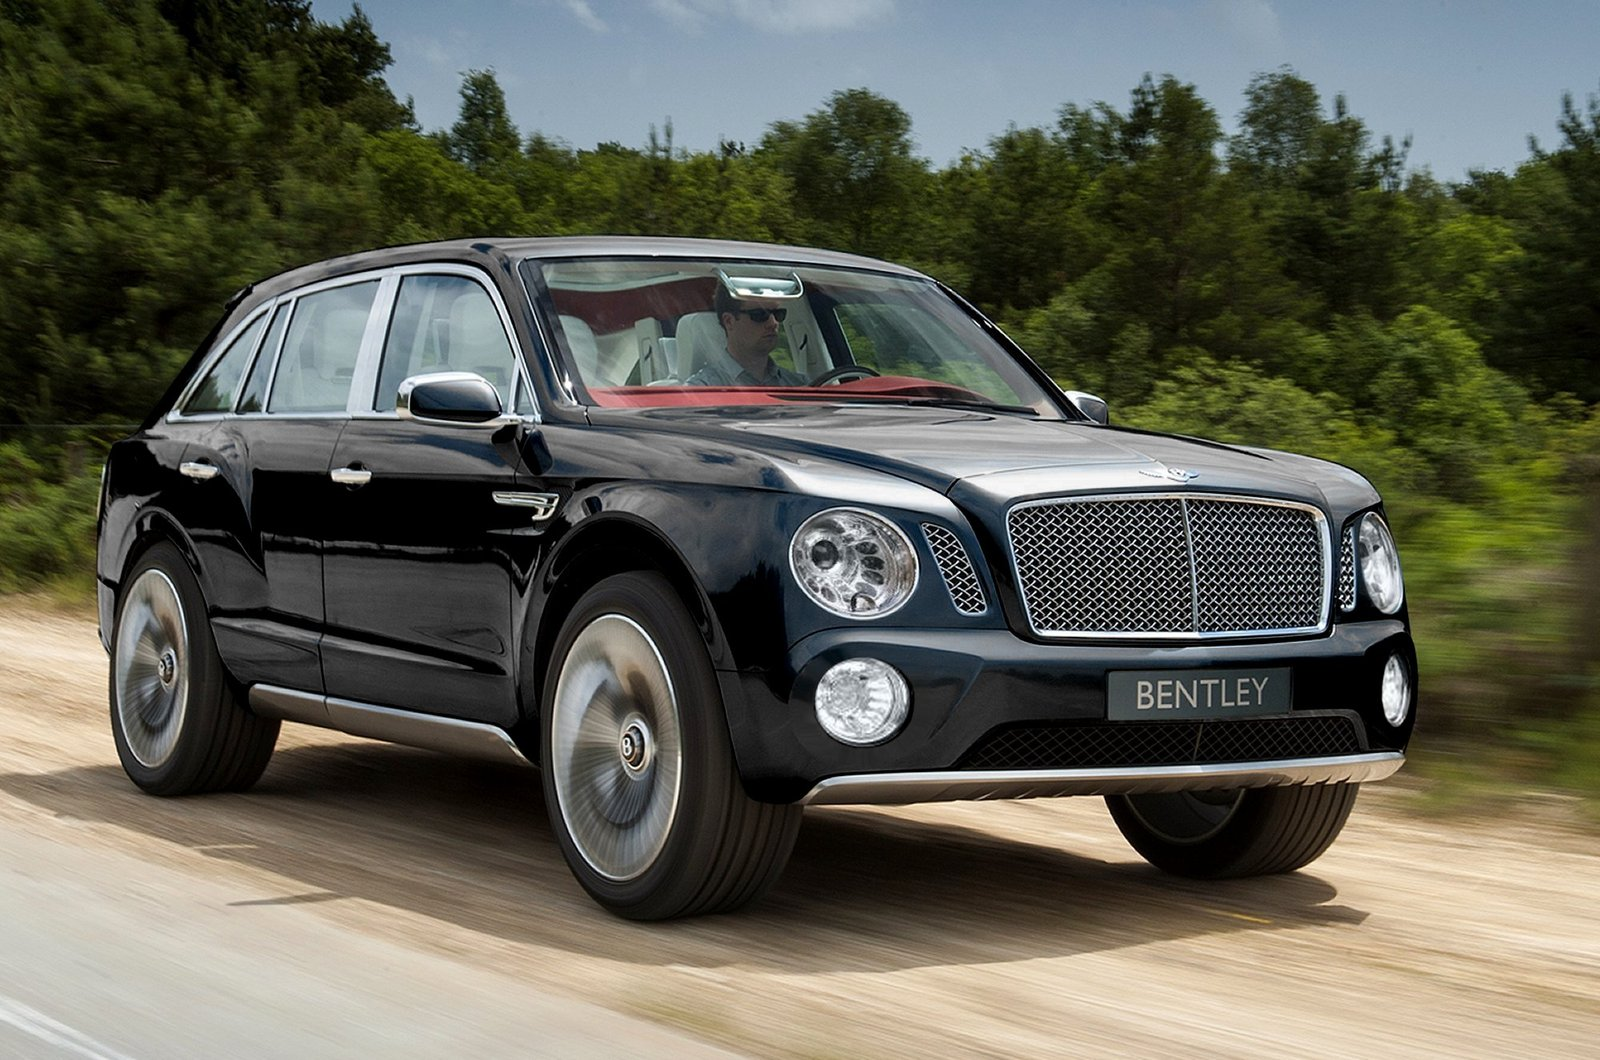 2016 Bentley Suv Carsaddiction Com